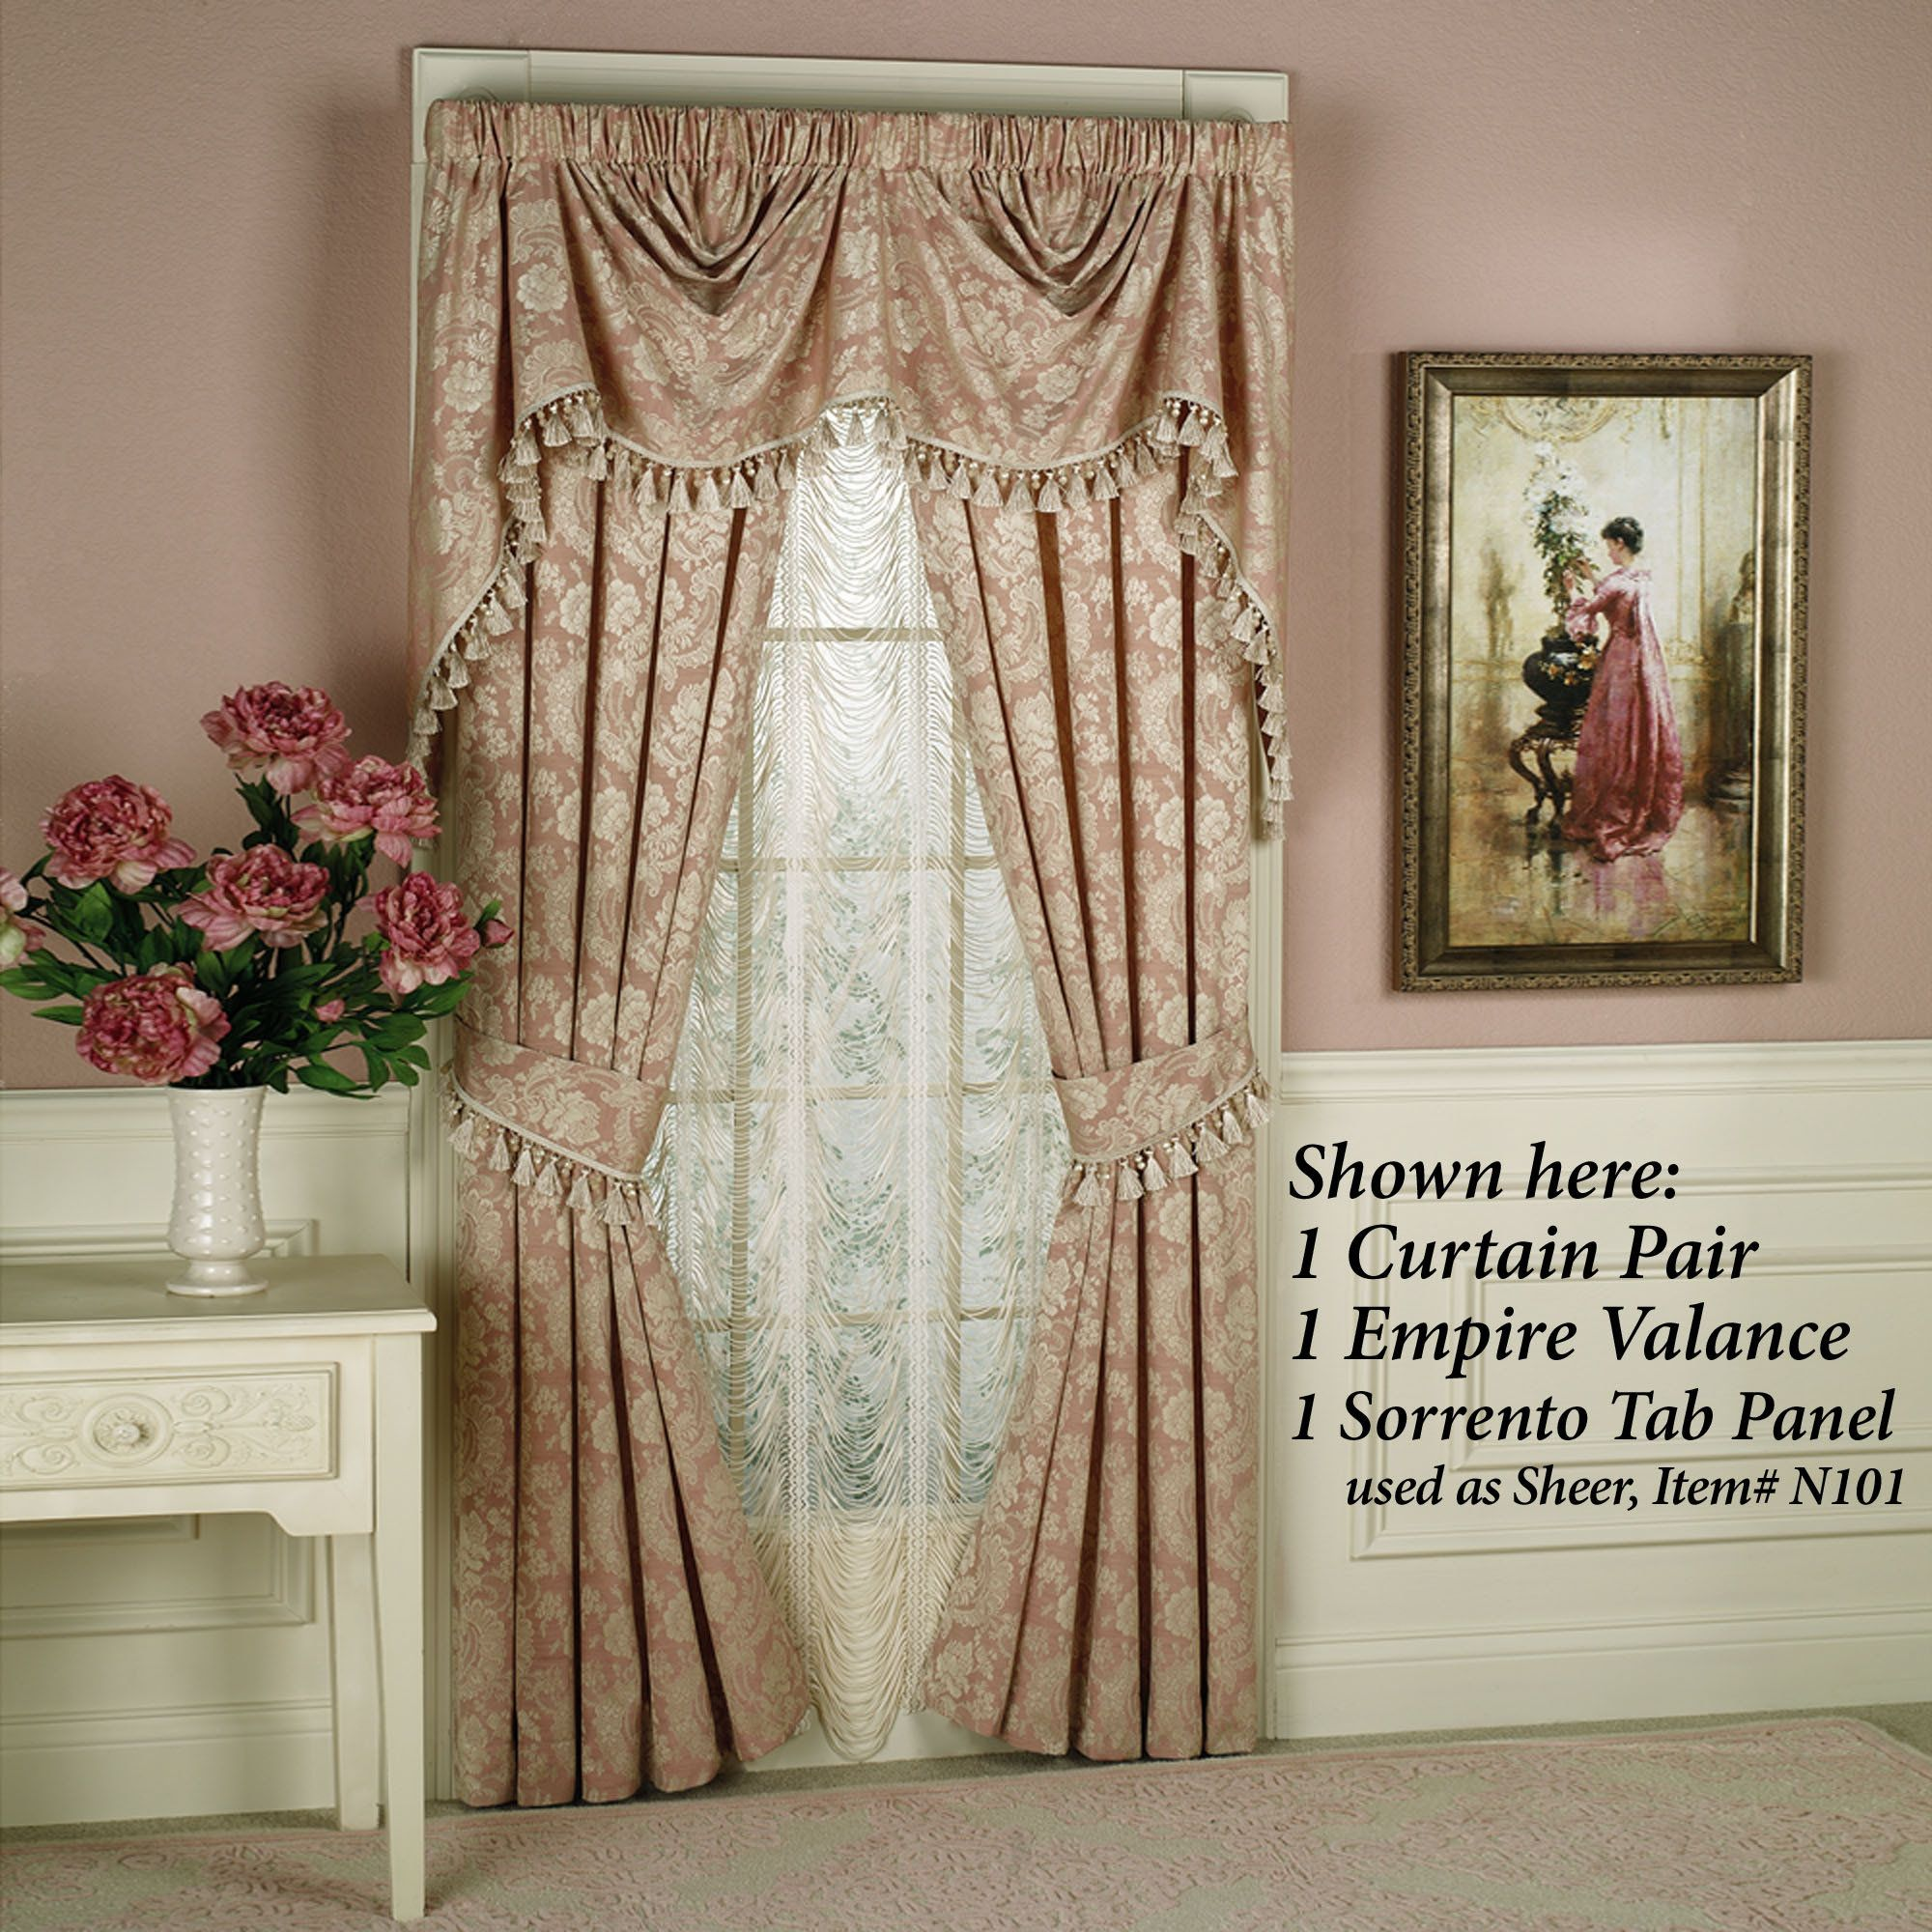 Bed against window with curtains  chantilly rose window treatments  rose window window and rose